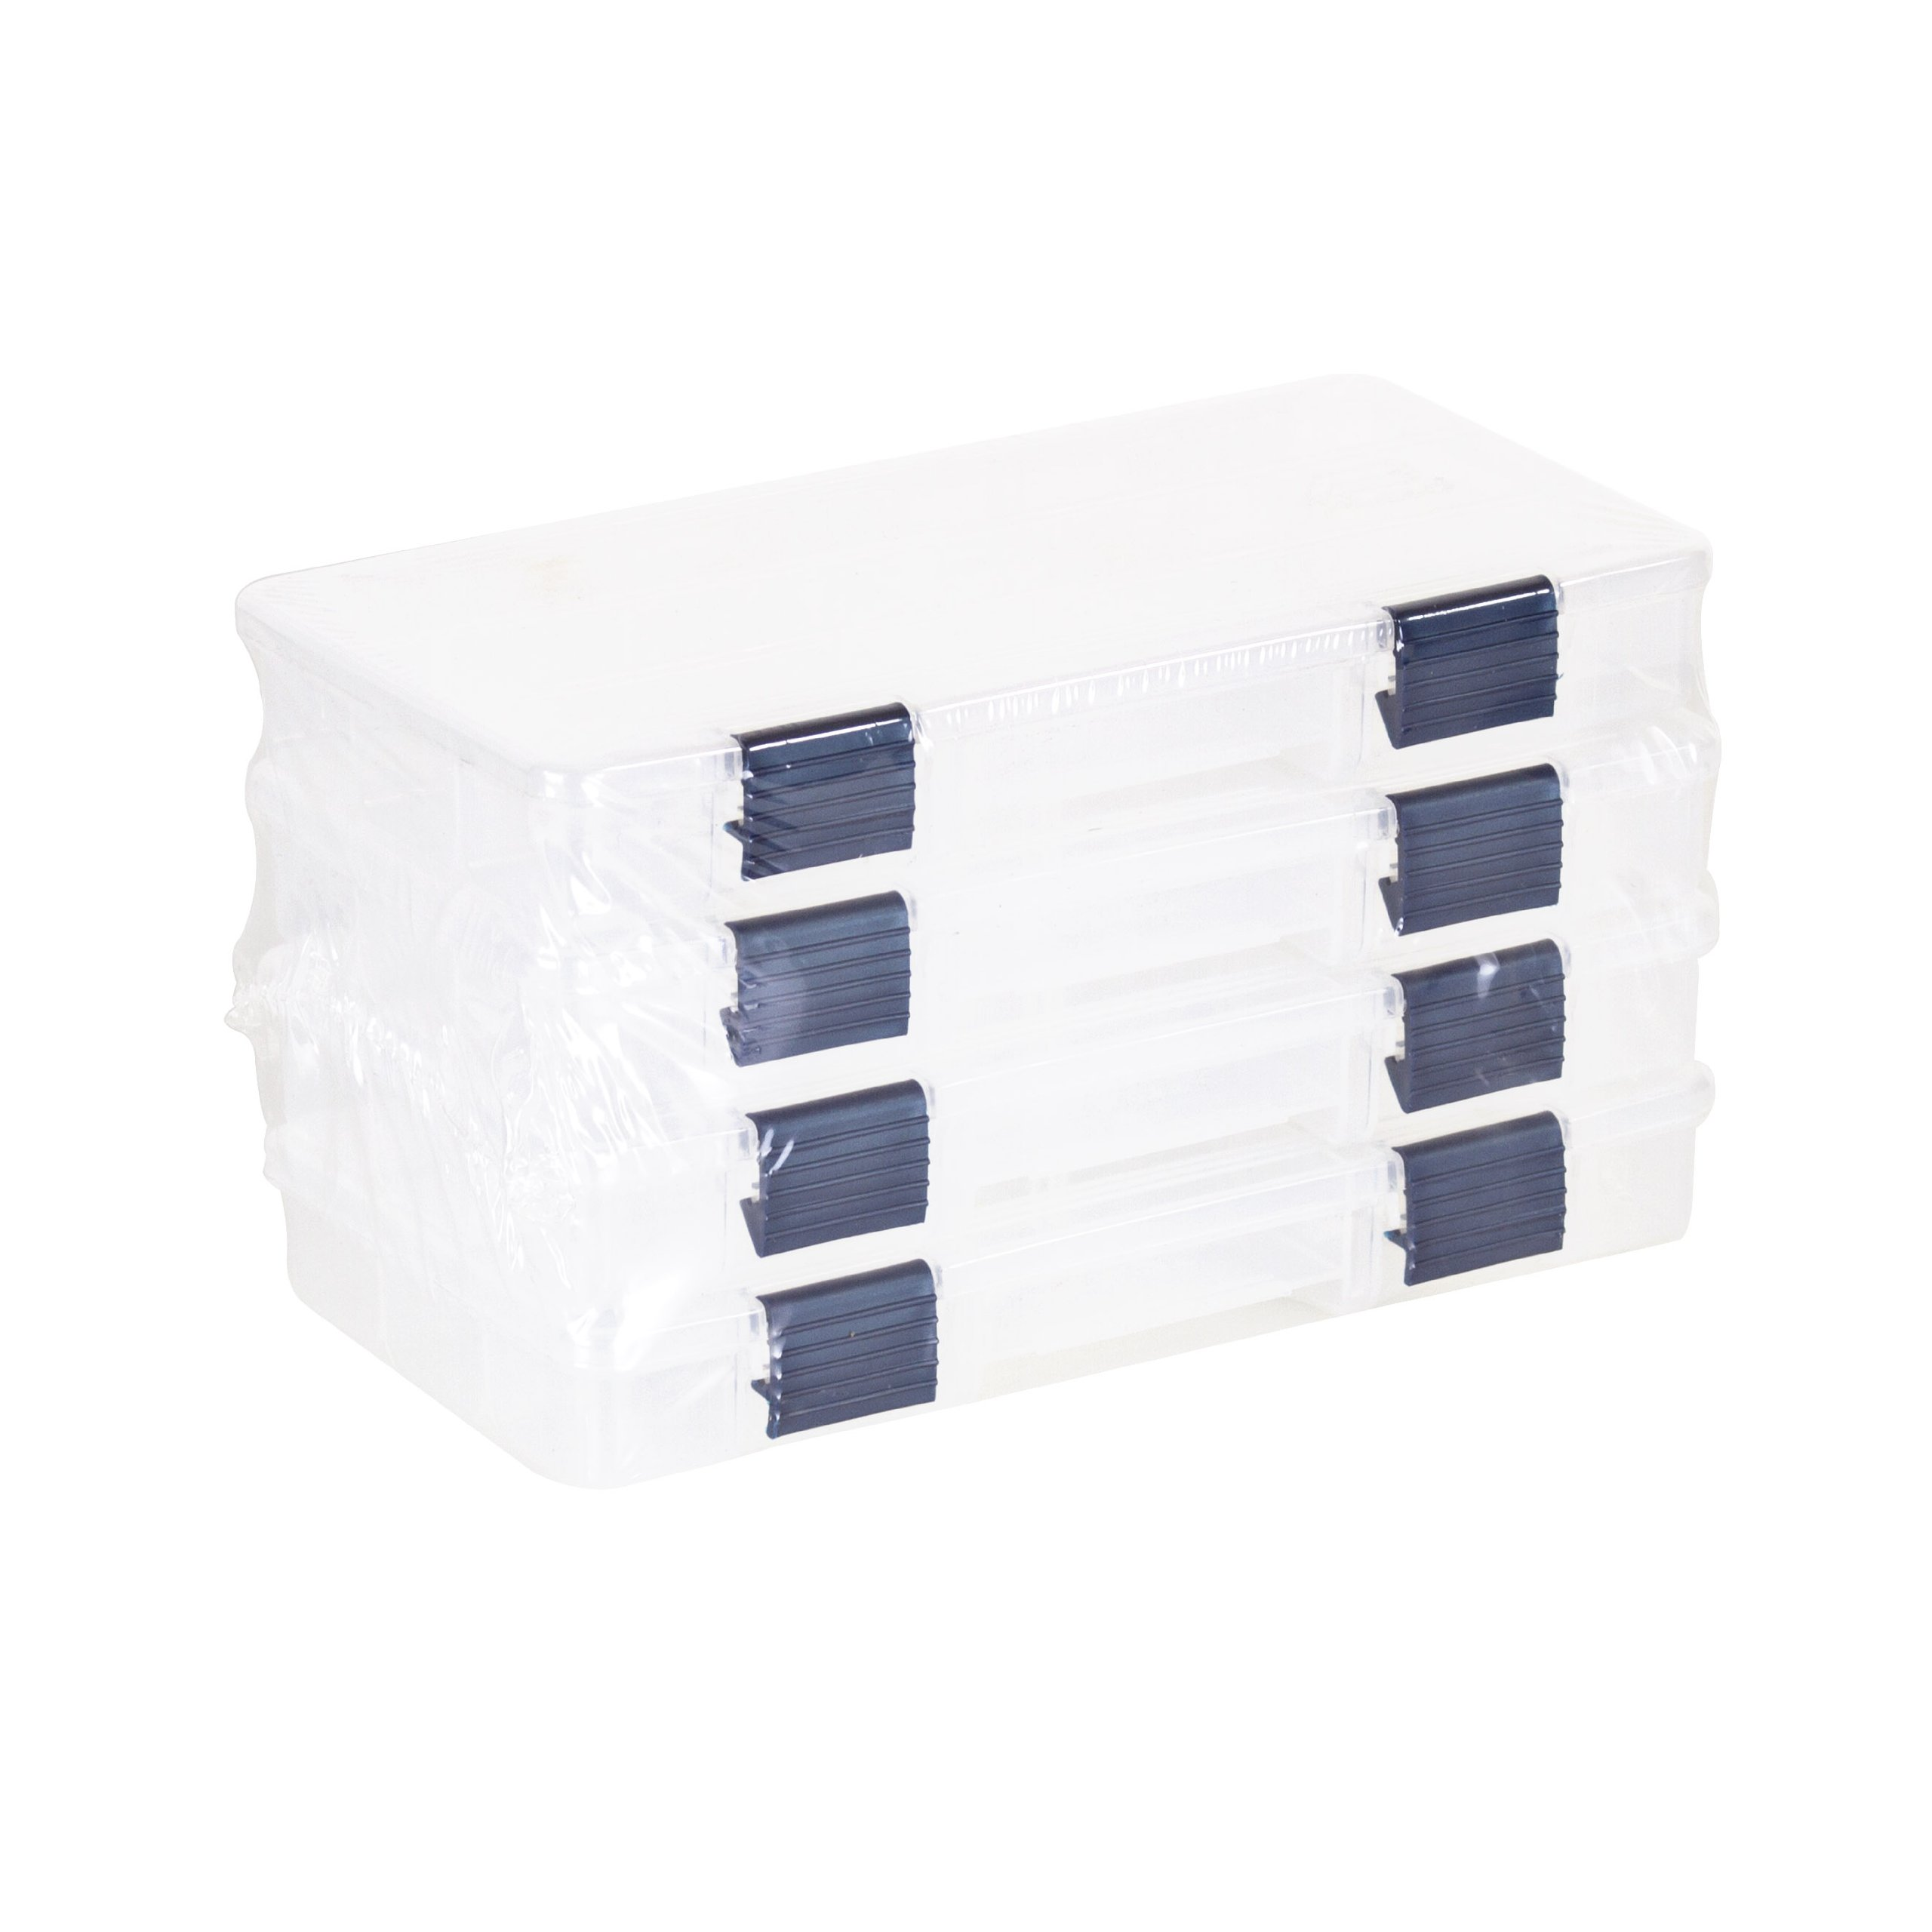 Plano Tackle Boxes,4 pack of  3500 Prolatch Stowaway Tackle Utility Boxes,  Fishing Tackle Storage by Plano